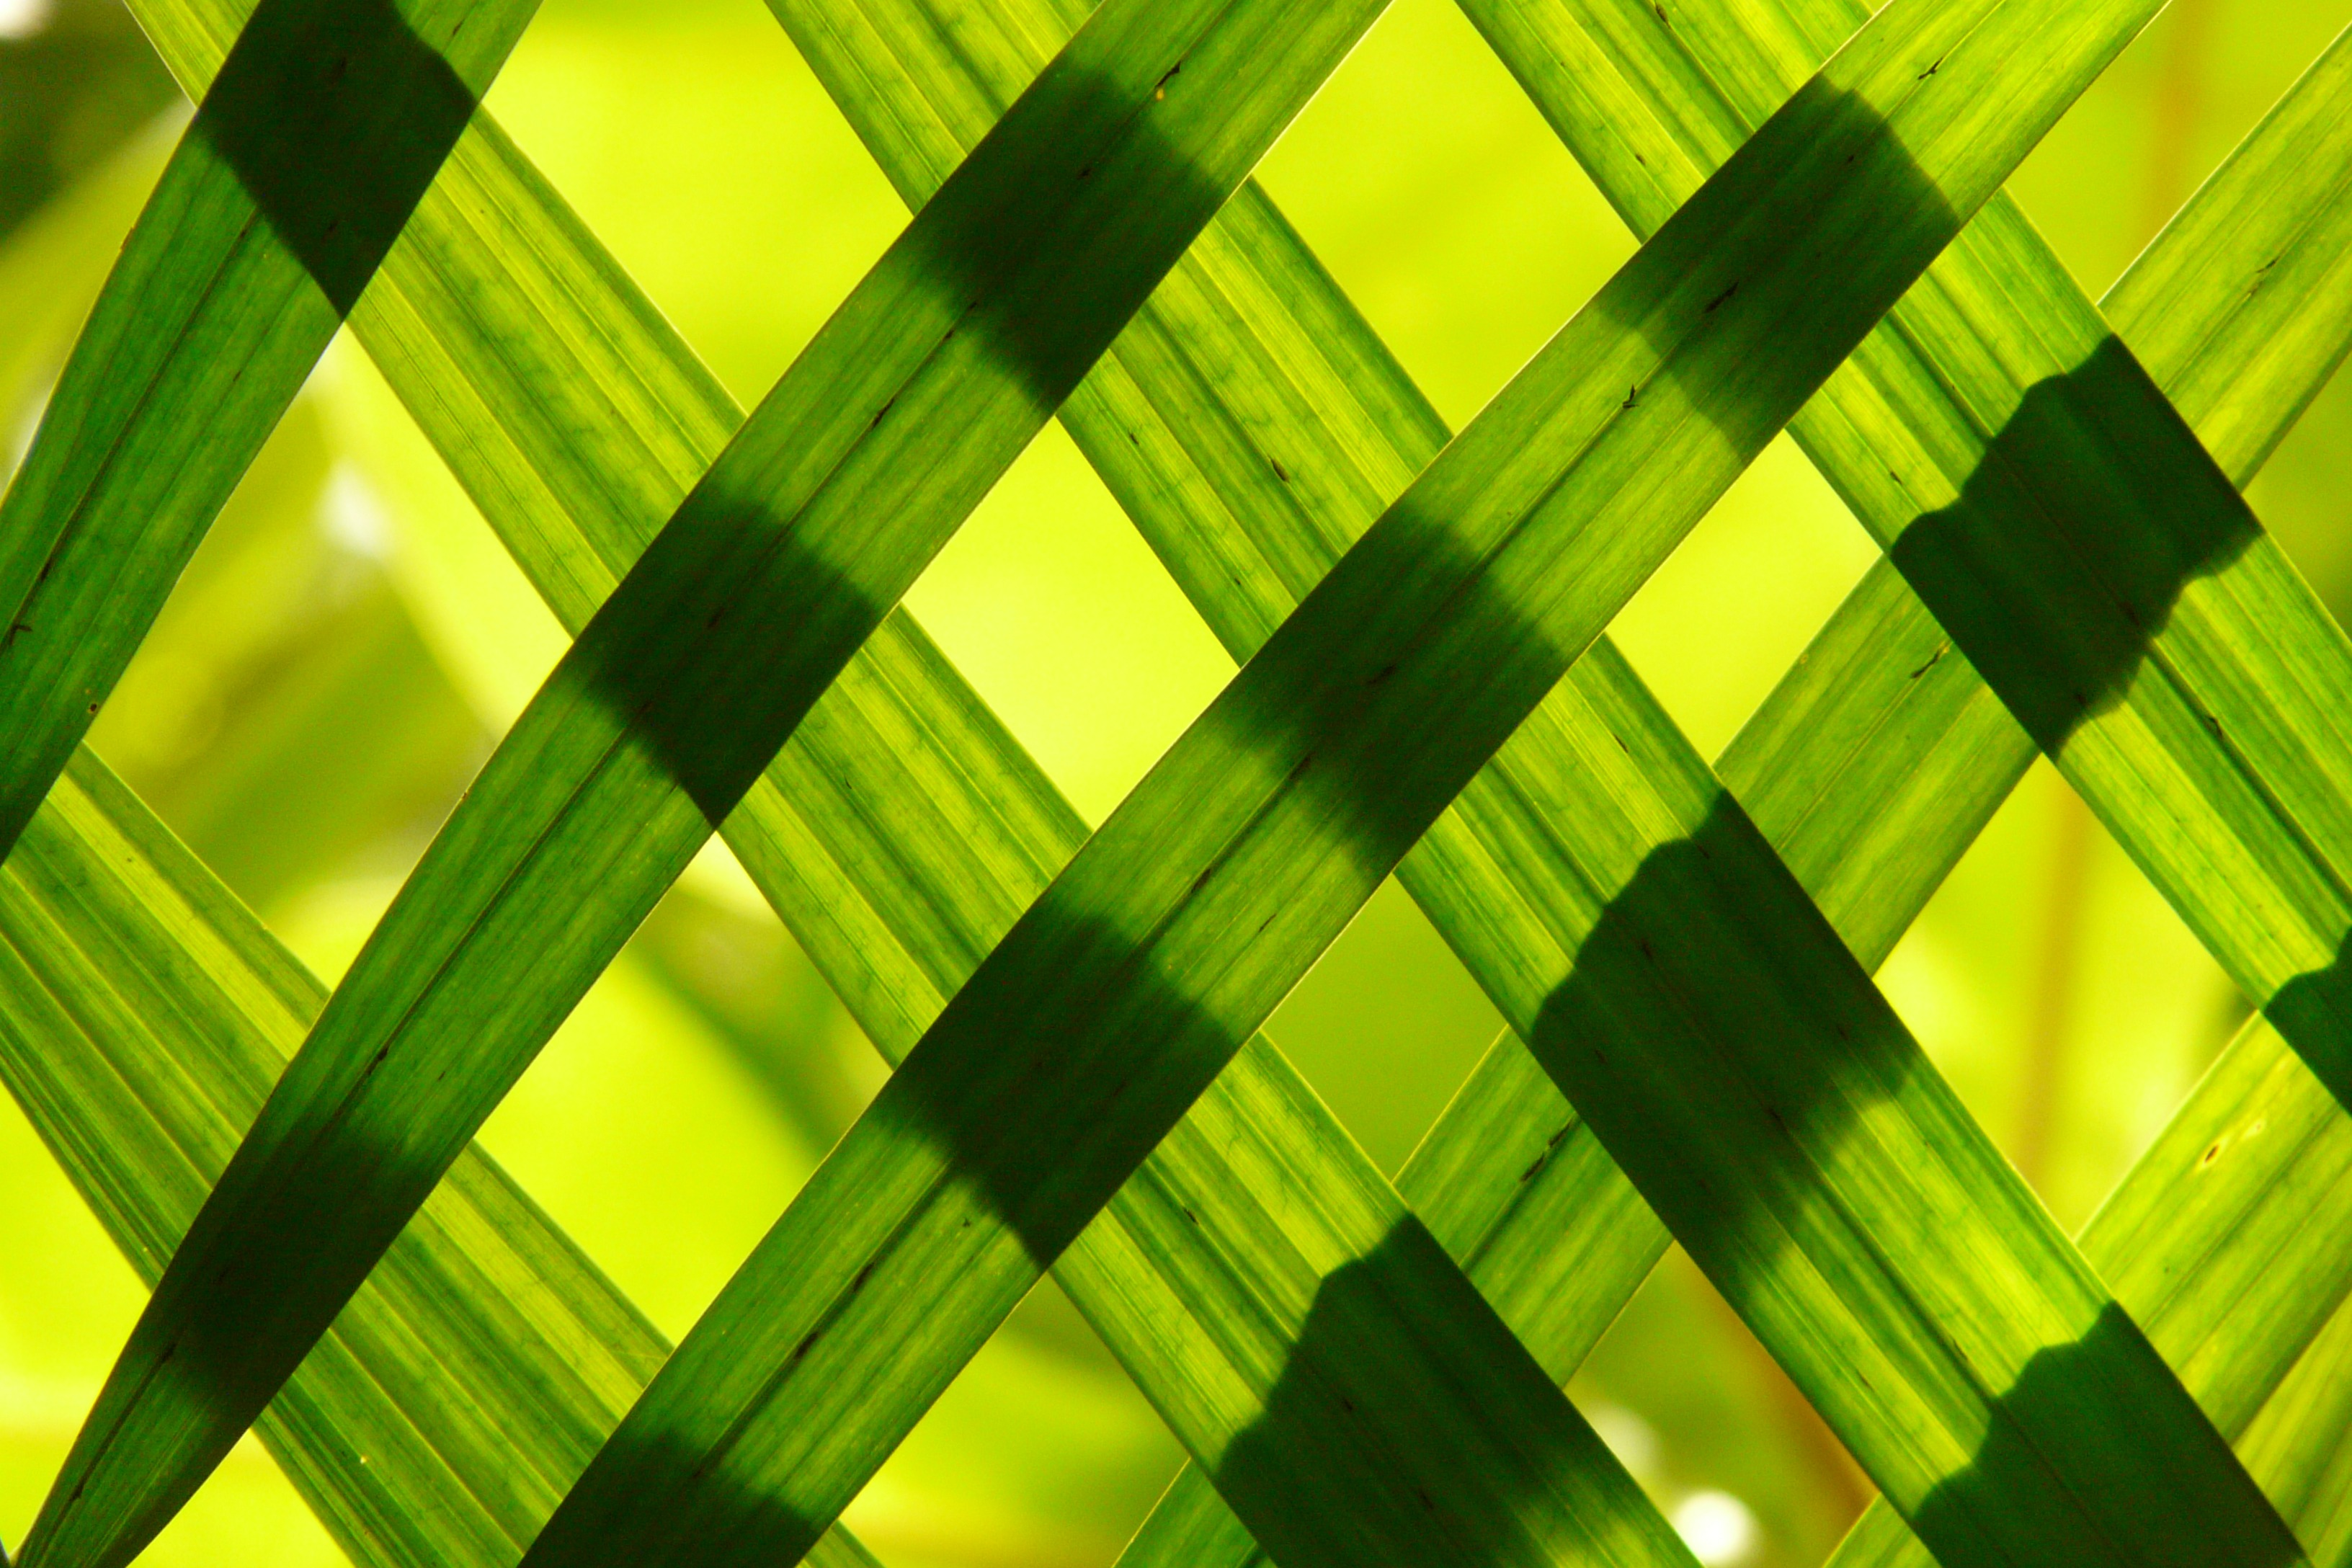 Animated Nature Wallpapers Free Download Green Woven Frame 183 Free Stock Photo